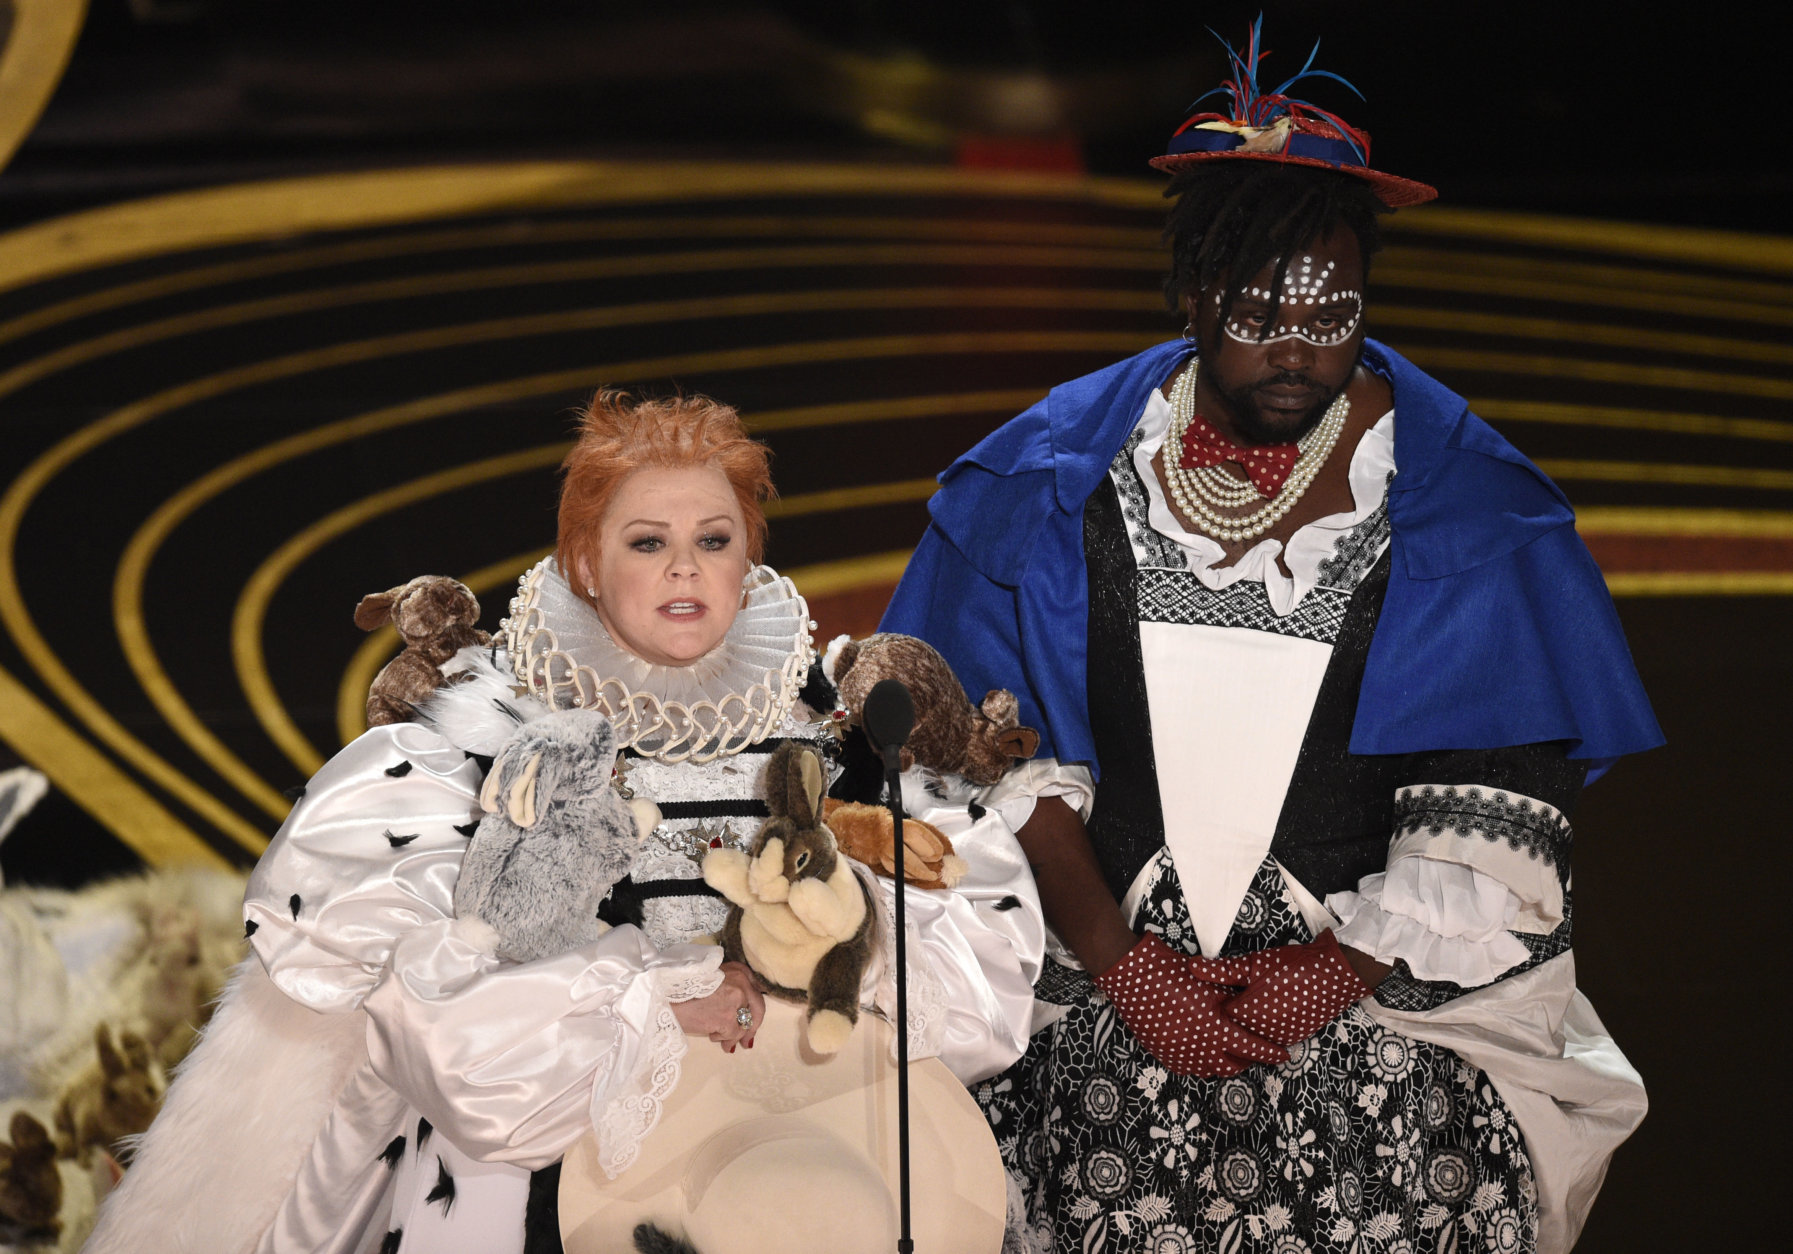 Melissa McCarthy, left, and Brian Tyree Henry present the award for best costume design at the Oscars on Sunday, Feb. 24, 2019, at the Dolby Theatre in Los Angeles. (Photo by Chris Pizzello/Invision/AP)